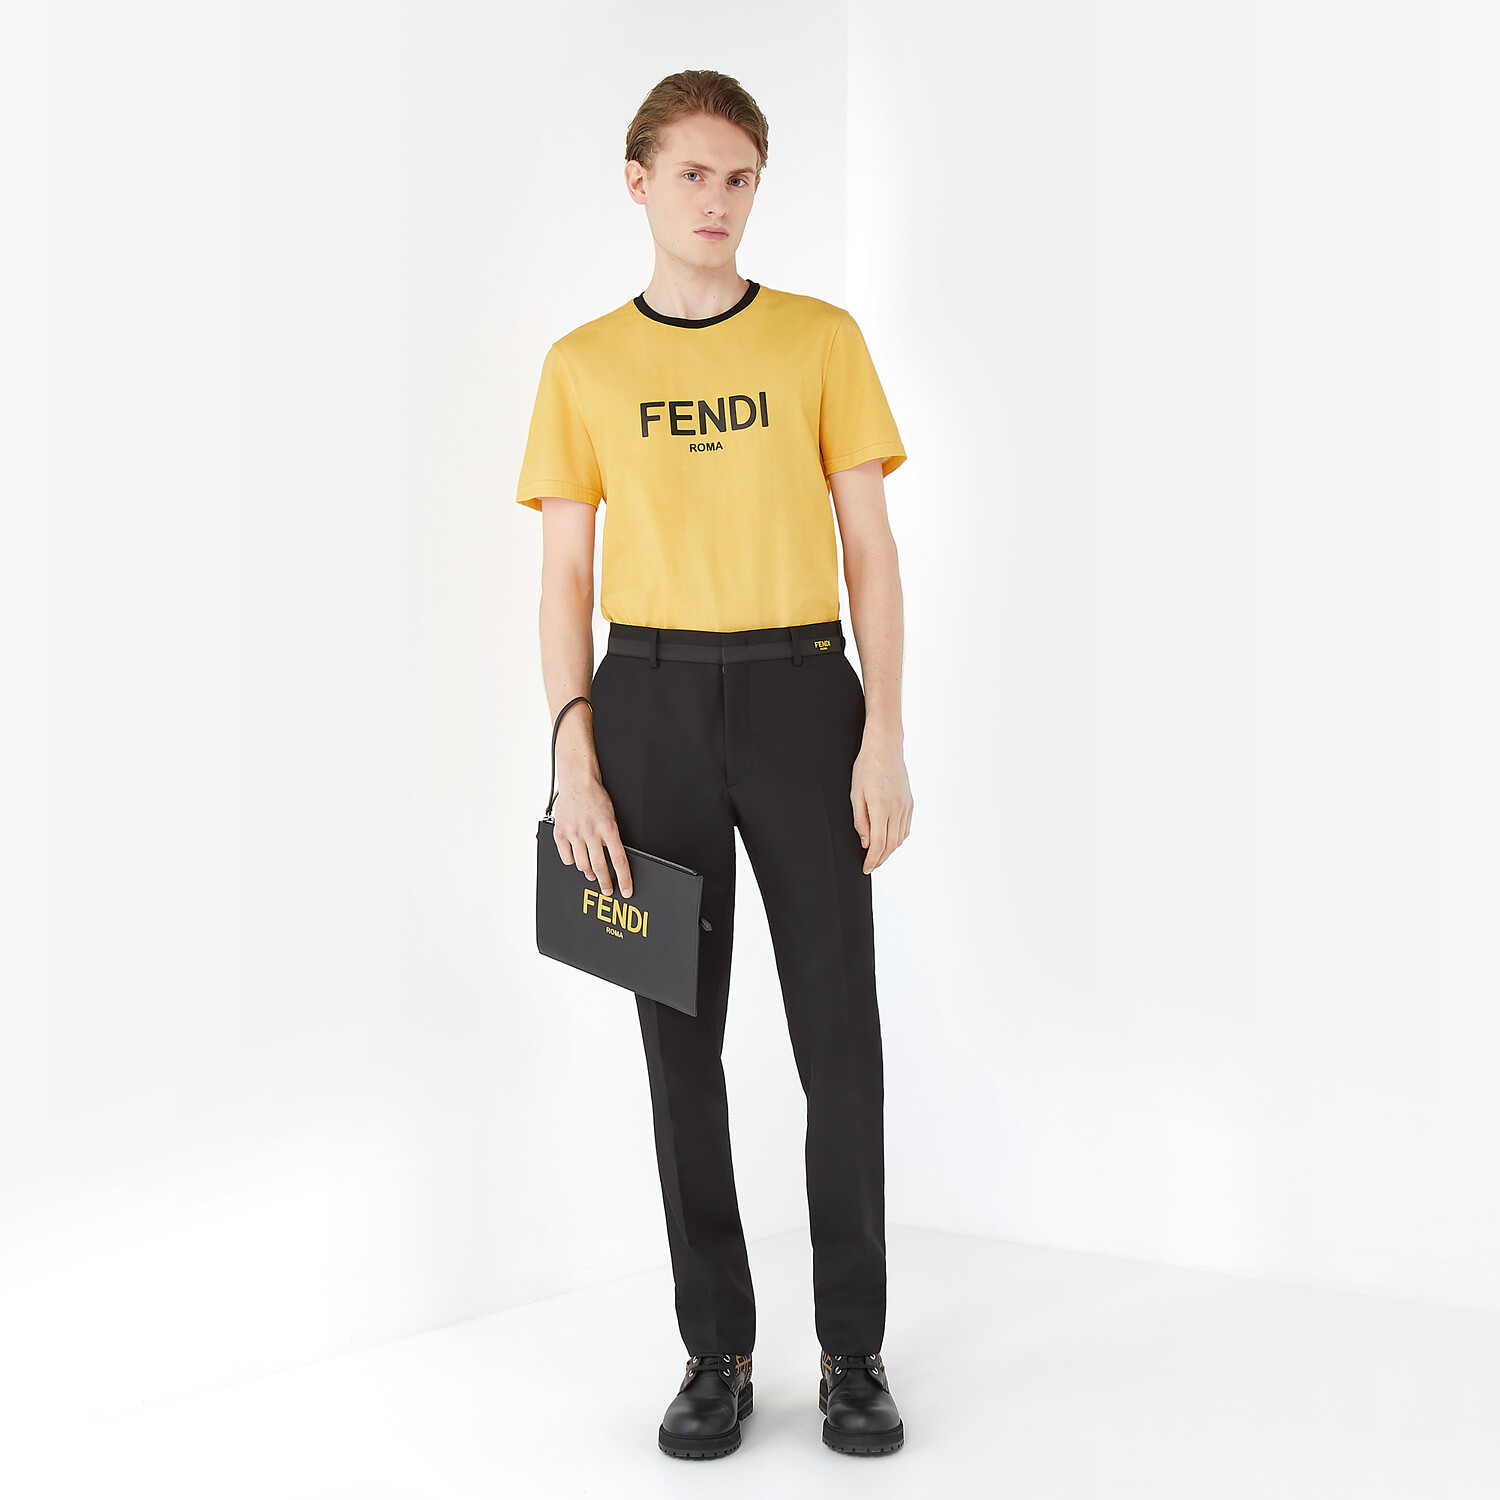 FENDI T-SHIRT - Yellow cotton T-shirt - view 4 detail